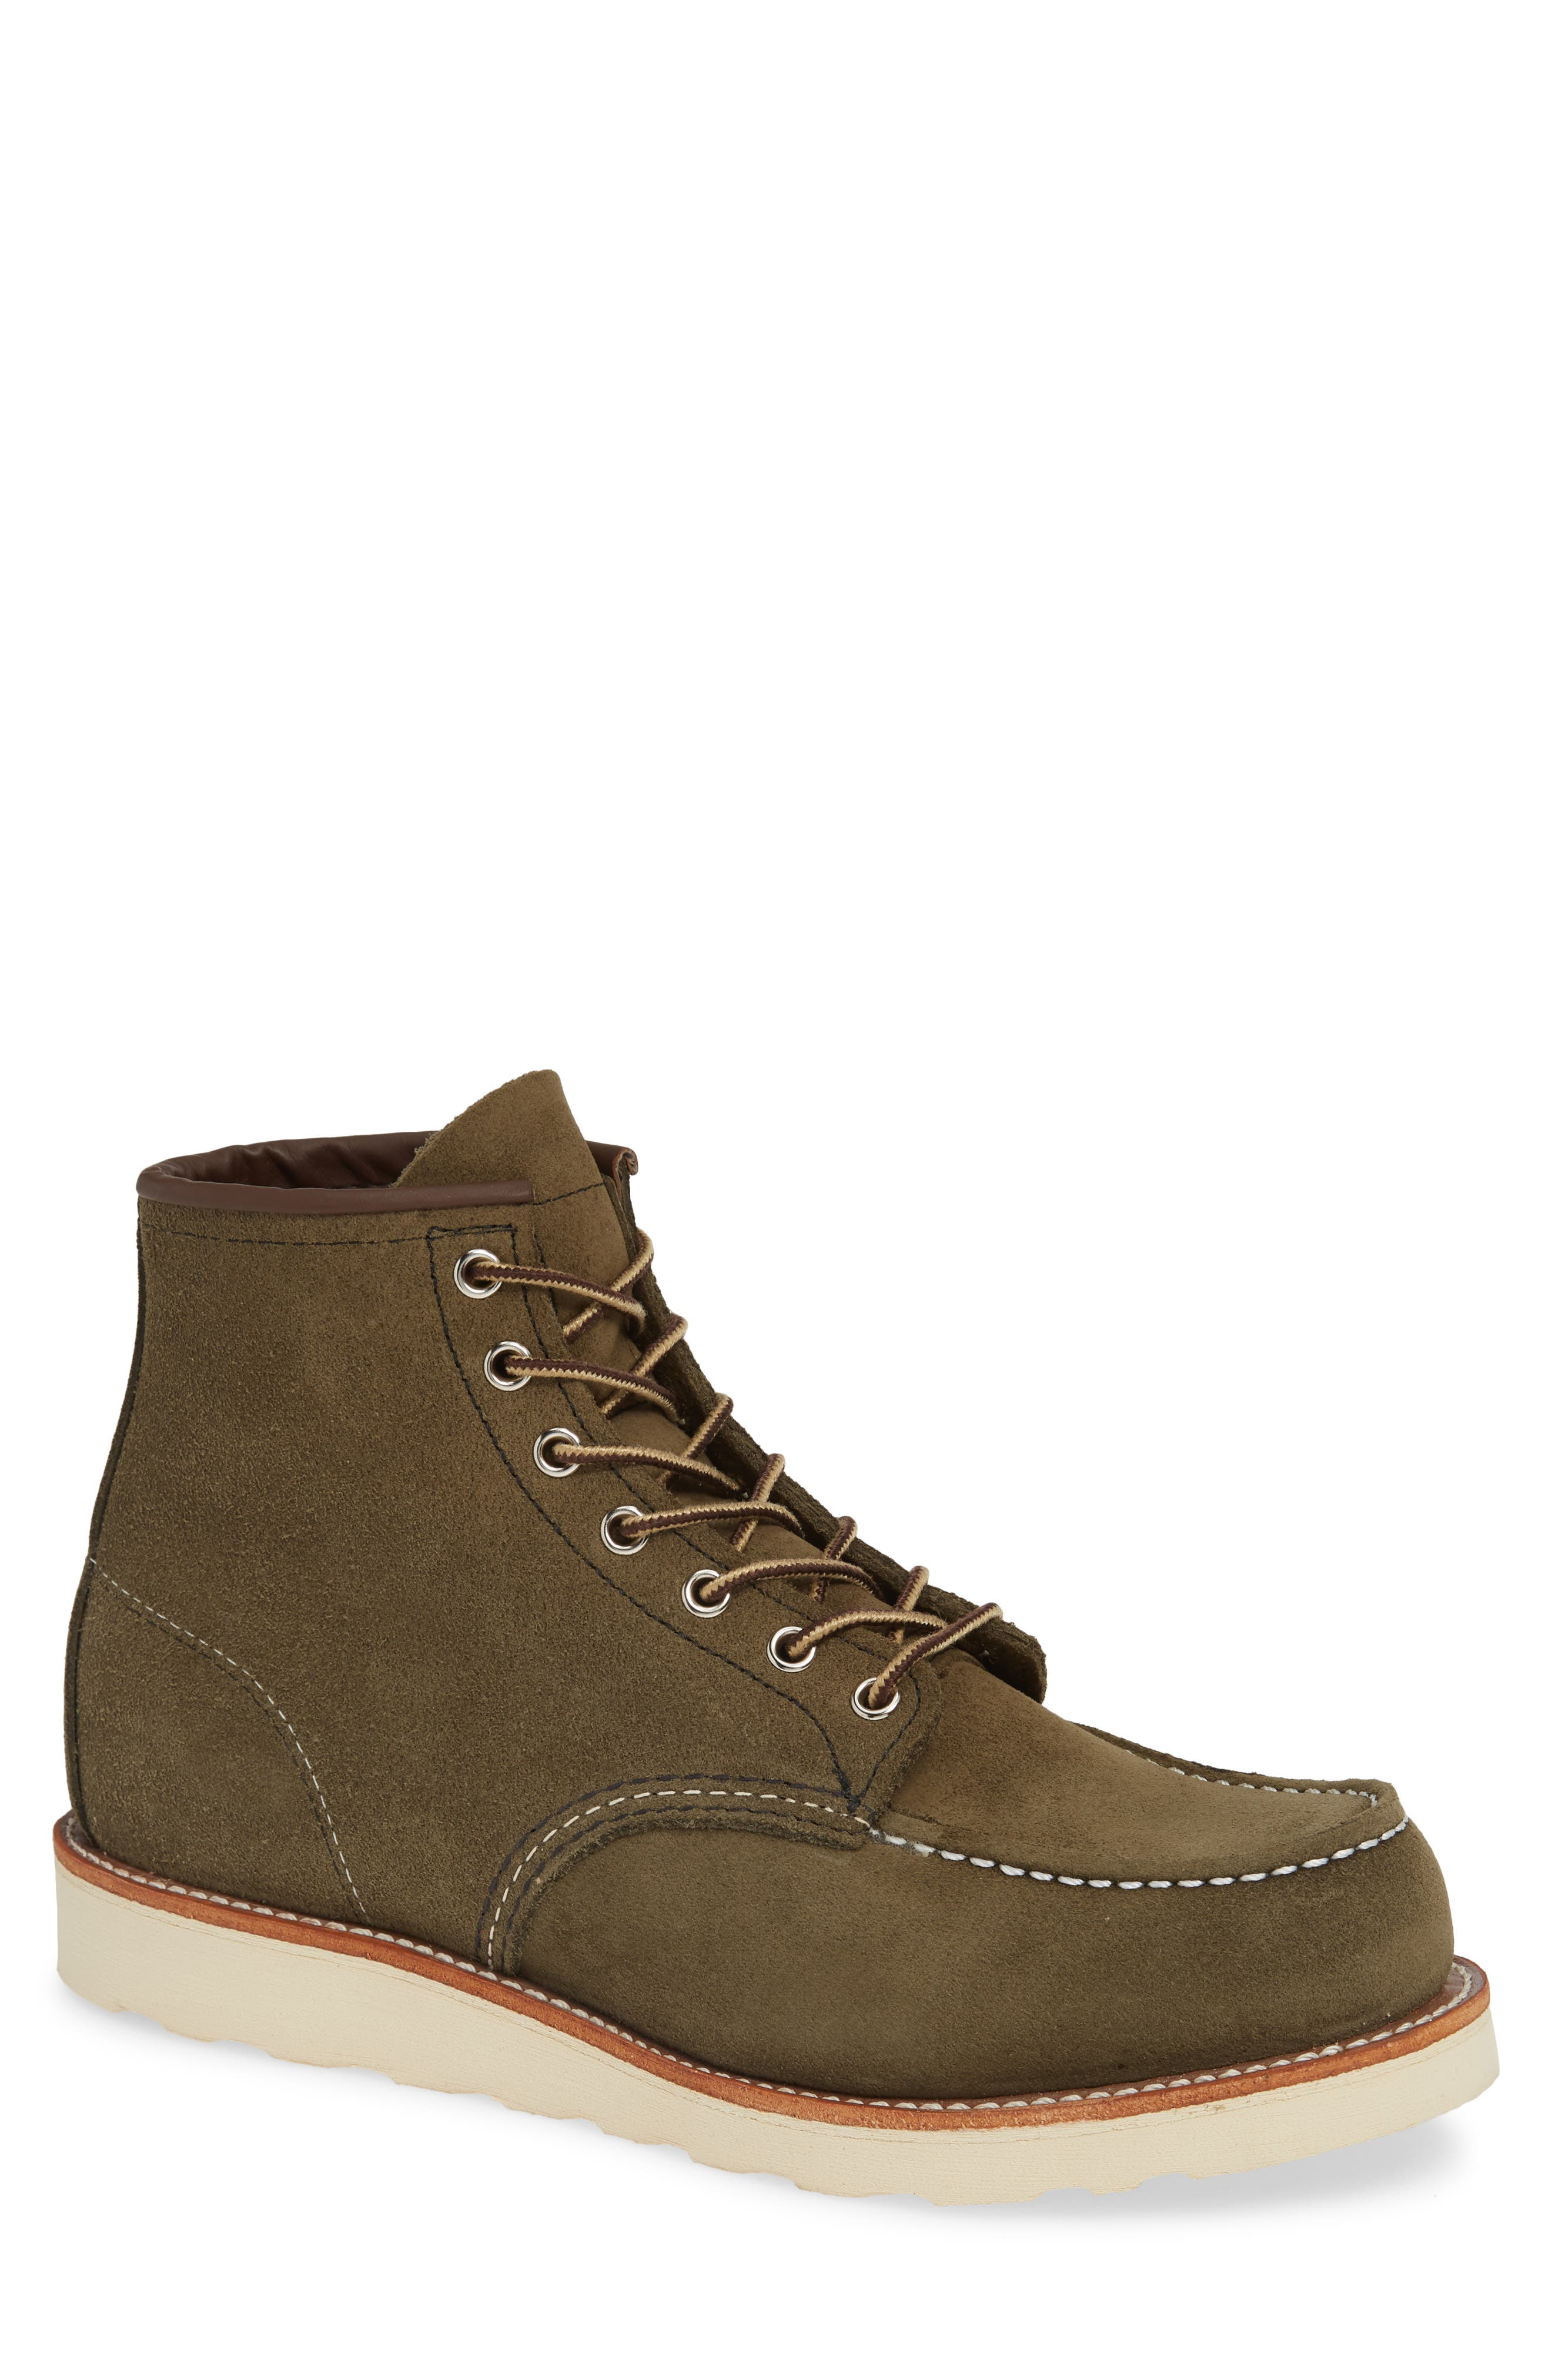 392f1a21a44 Red Wing Urban Clothing, Urban Wear | Nordstrom